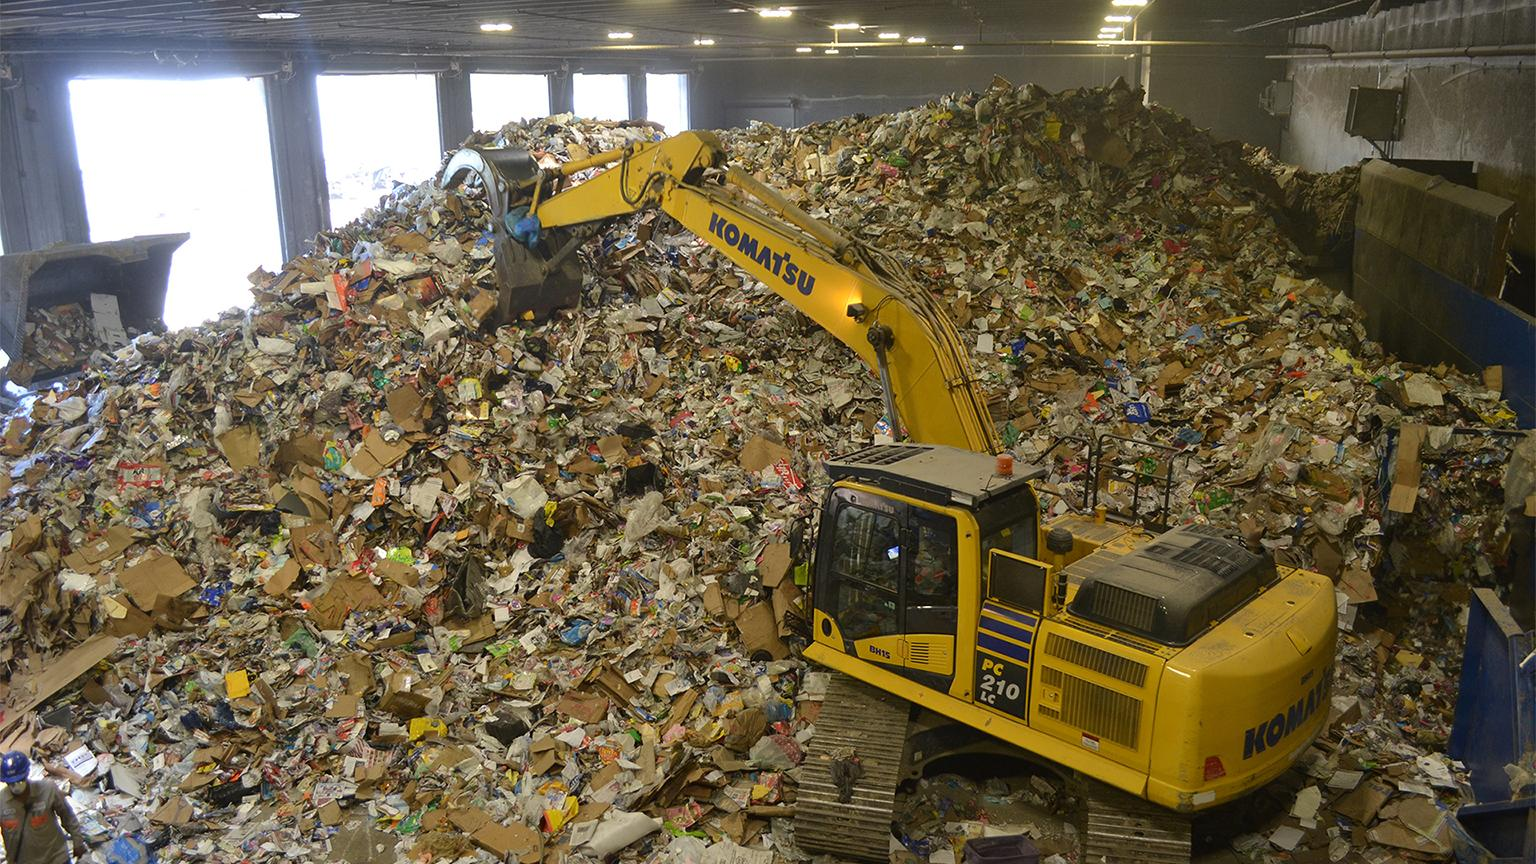 About 400 tons of recycling are processed every day at Lakeshore's facility in Forest View. (Alex Ruppenthal / Chicago Tonight)